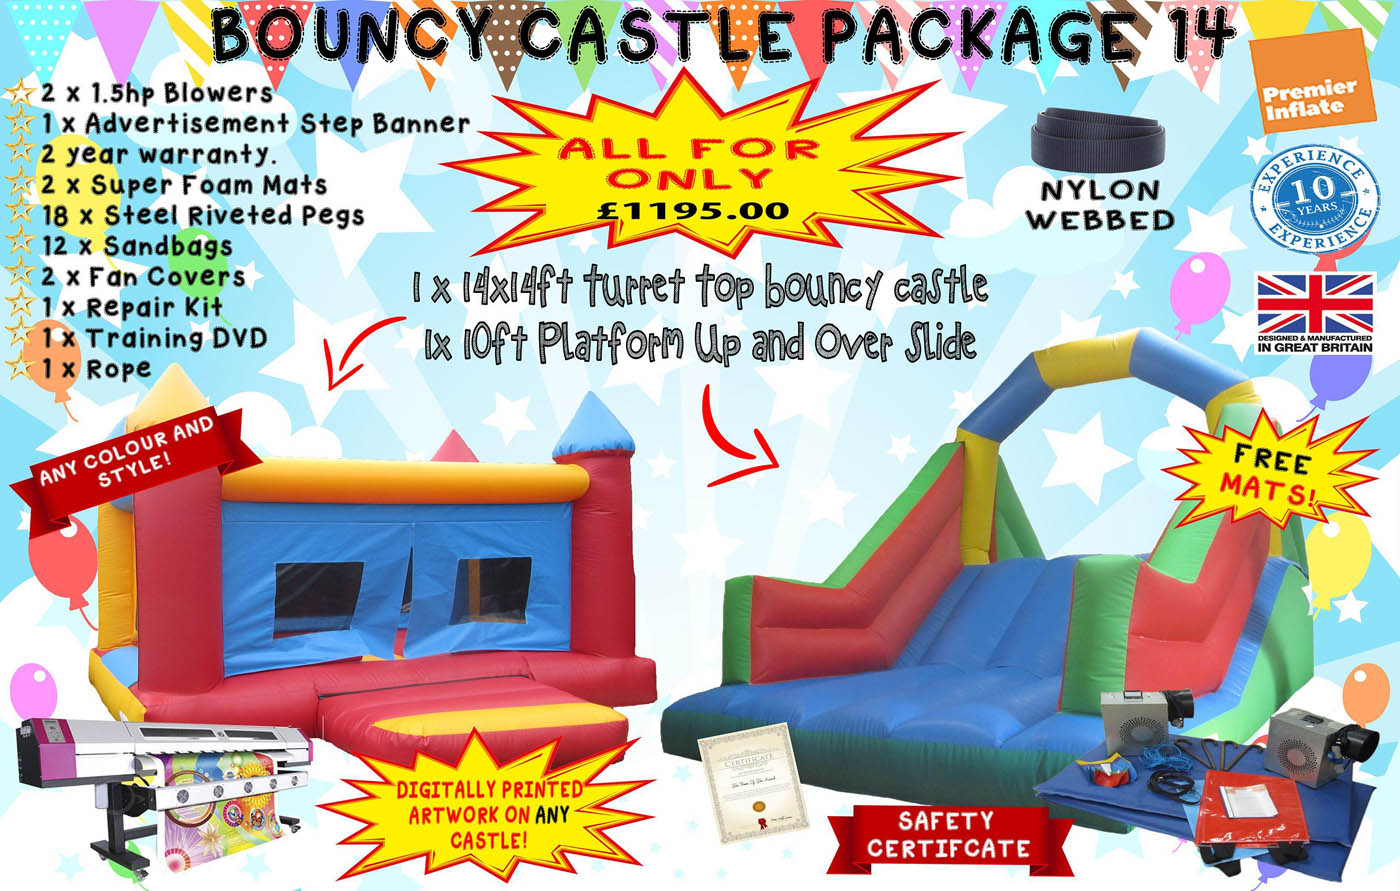 Inflatable-bouncy-castle-deal-package-14-compressor